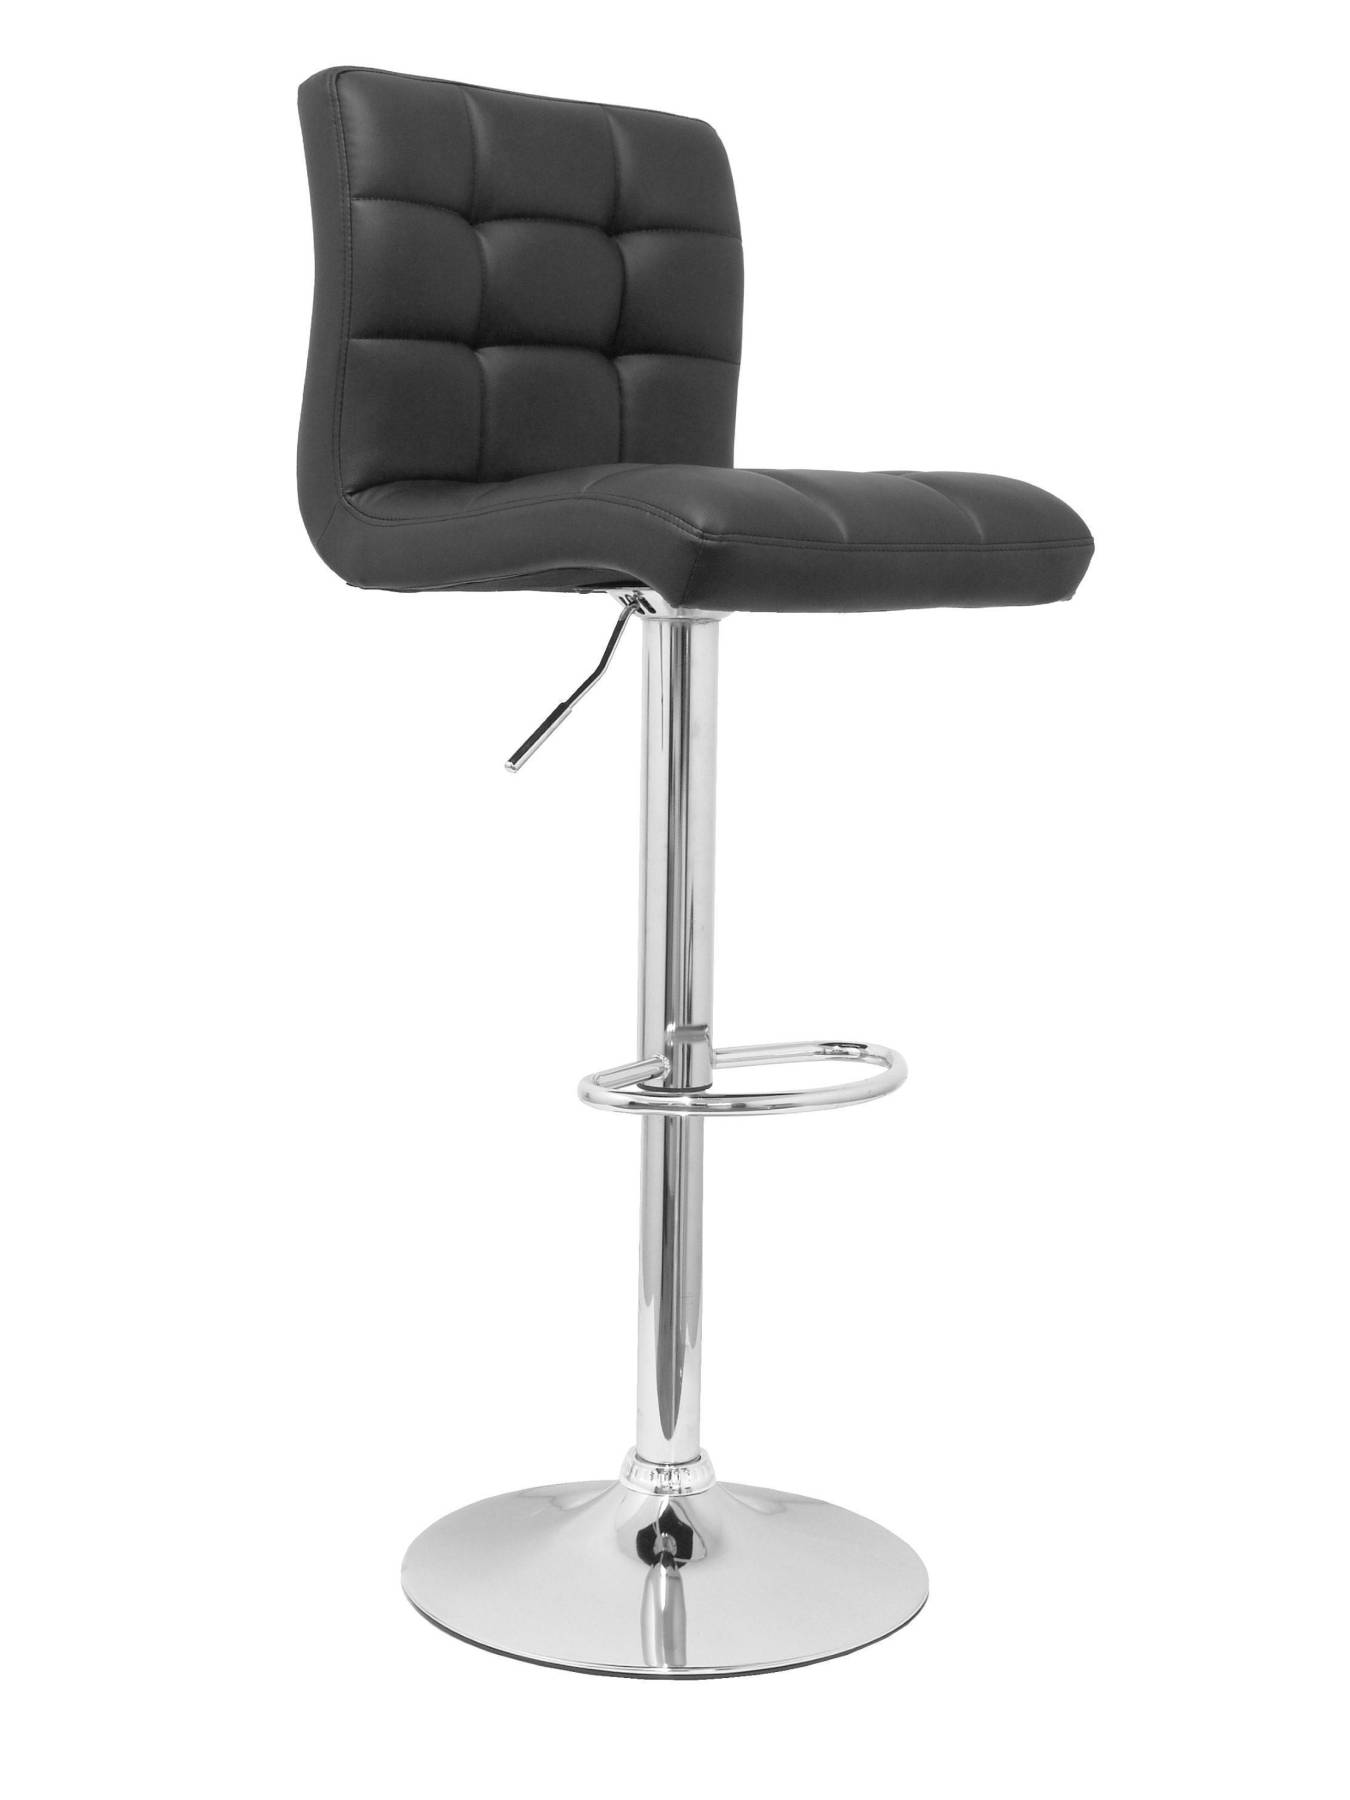 Pack 2 Pub Barstools, Swivel And Dimmable In High Altitude Using Cylinder Gas (include Hoop Foot Pegs Chrome)-